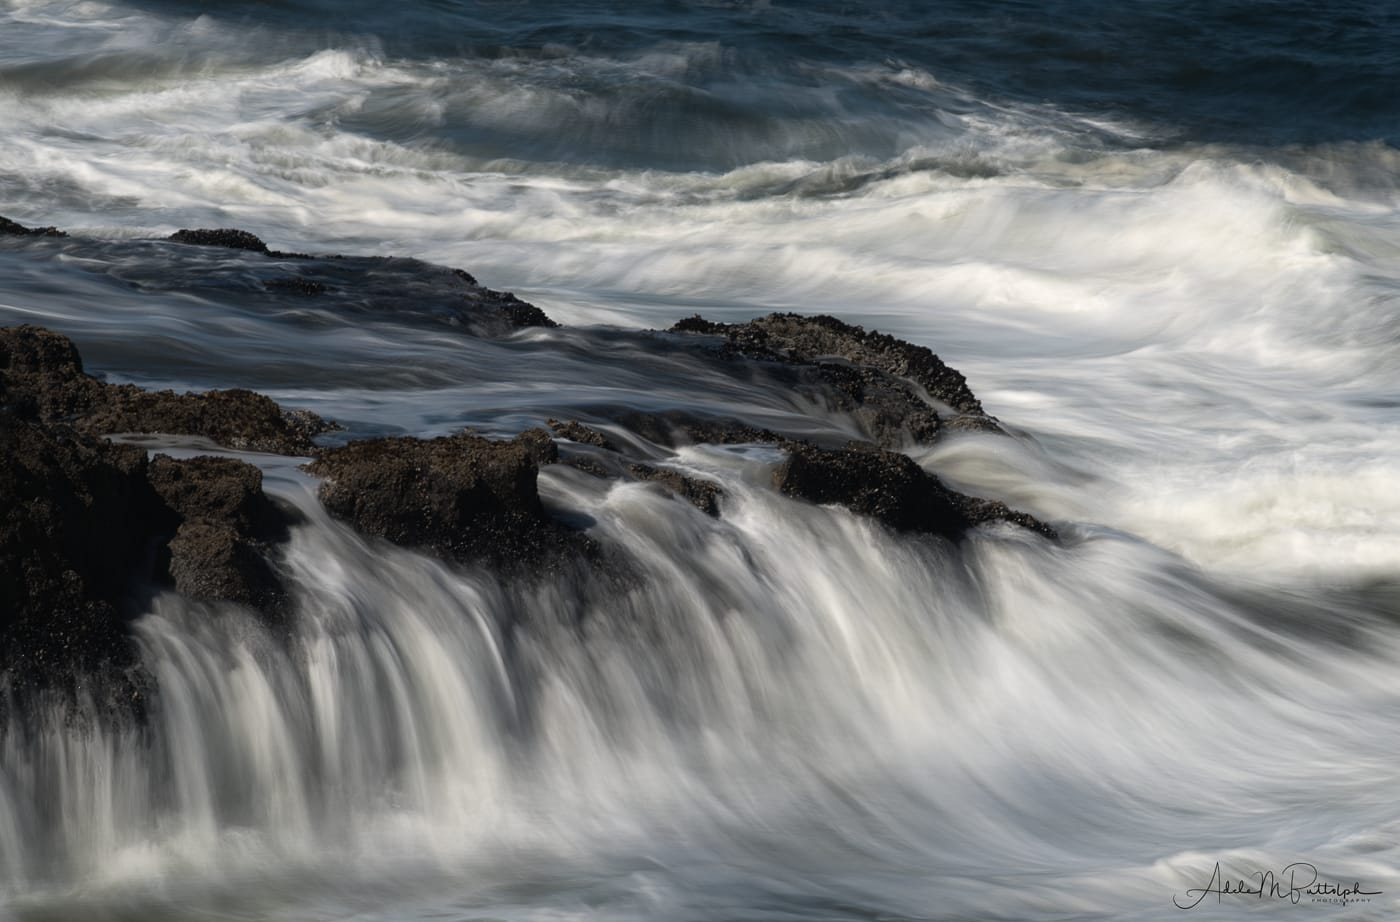 Water cascading off rocks at Cape Perpetua, Oregon. © Adele M. Buttolph, © Adele Buttolph